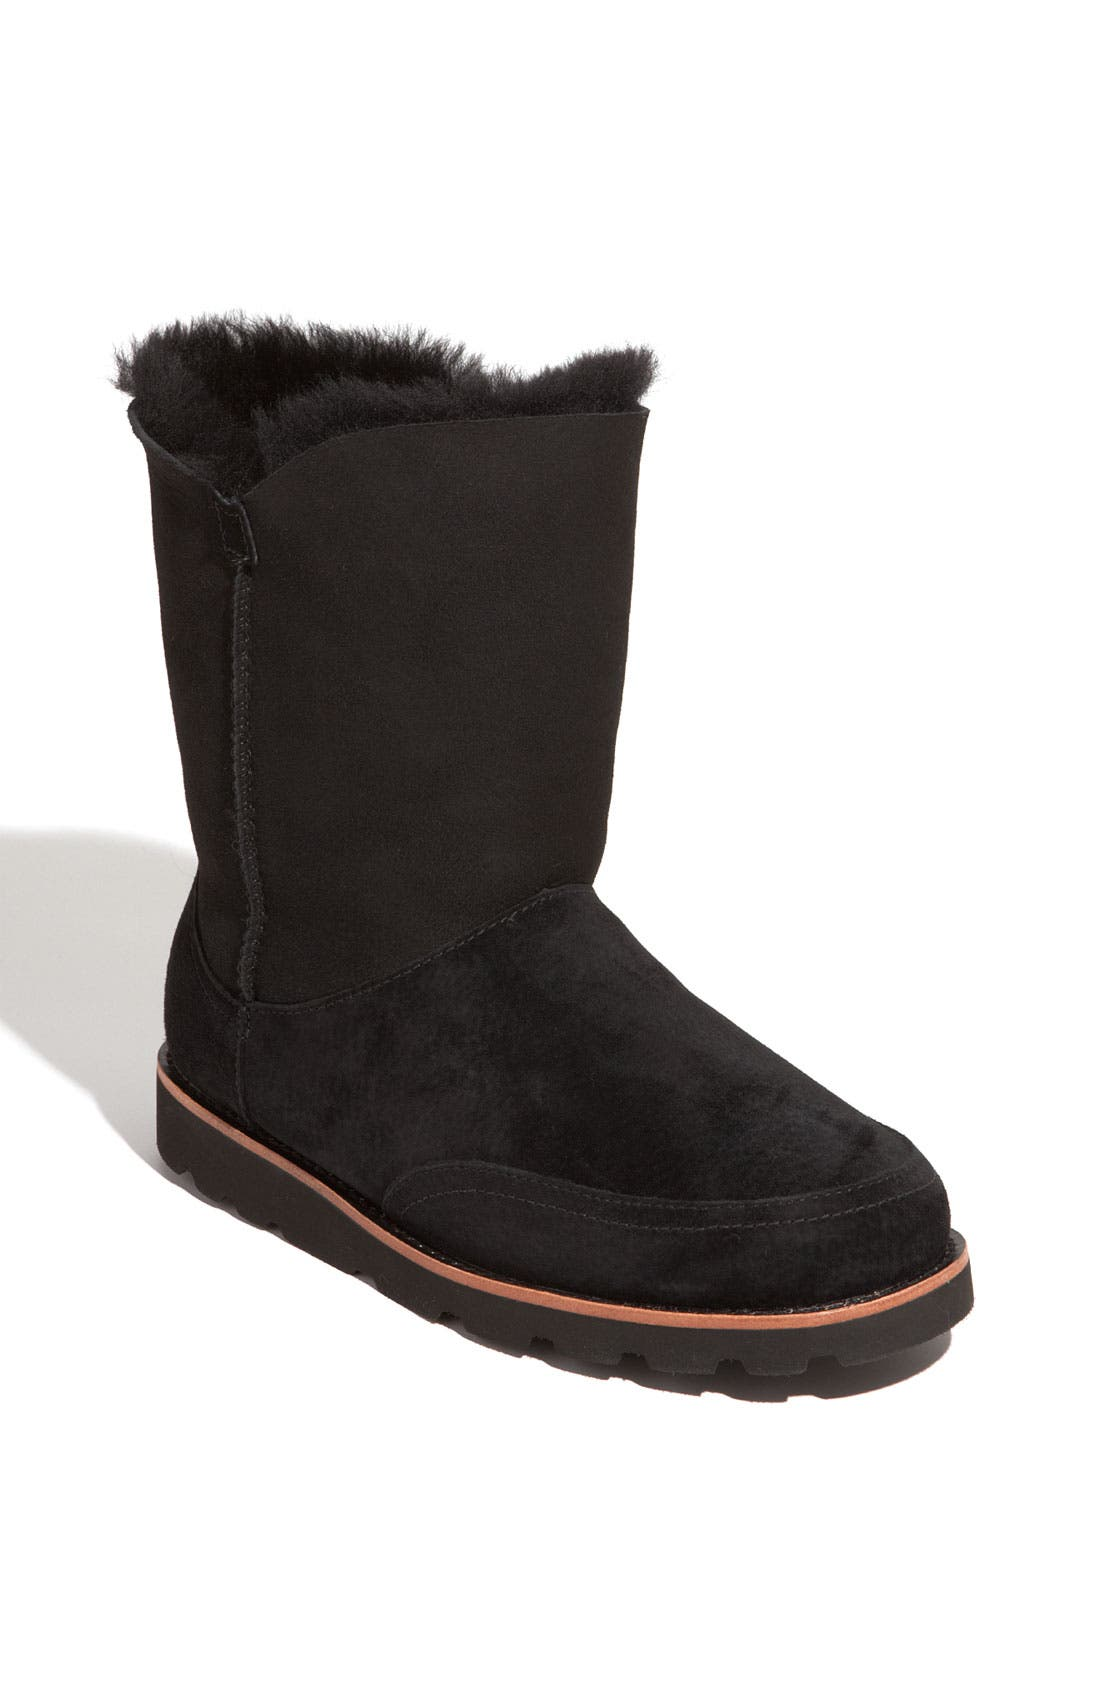 Alternate Image 1 Selected - UGG® Australia 'Shanleigh' Boot (Women)